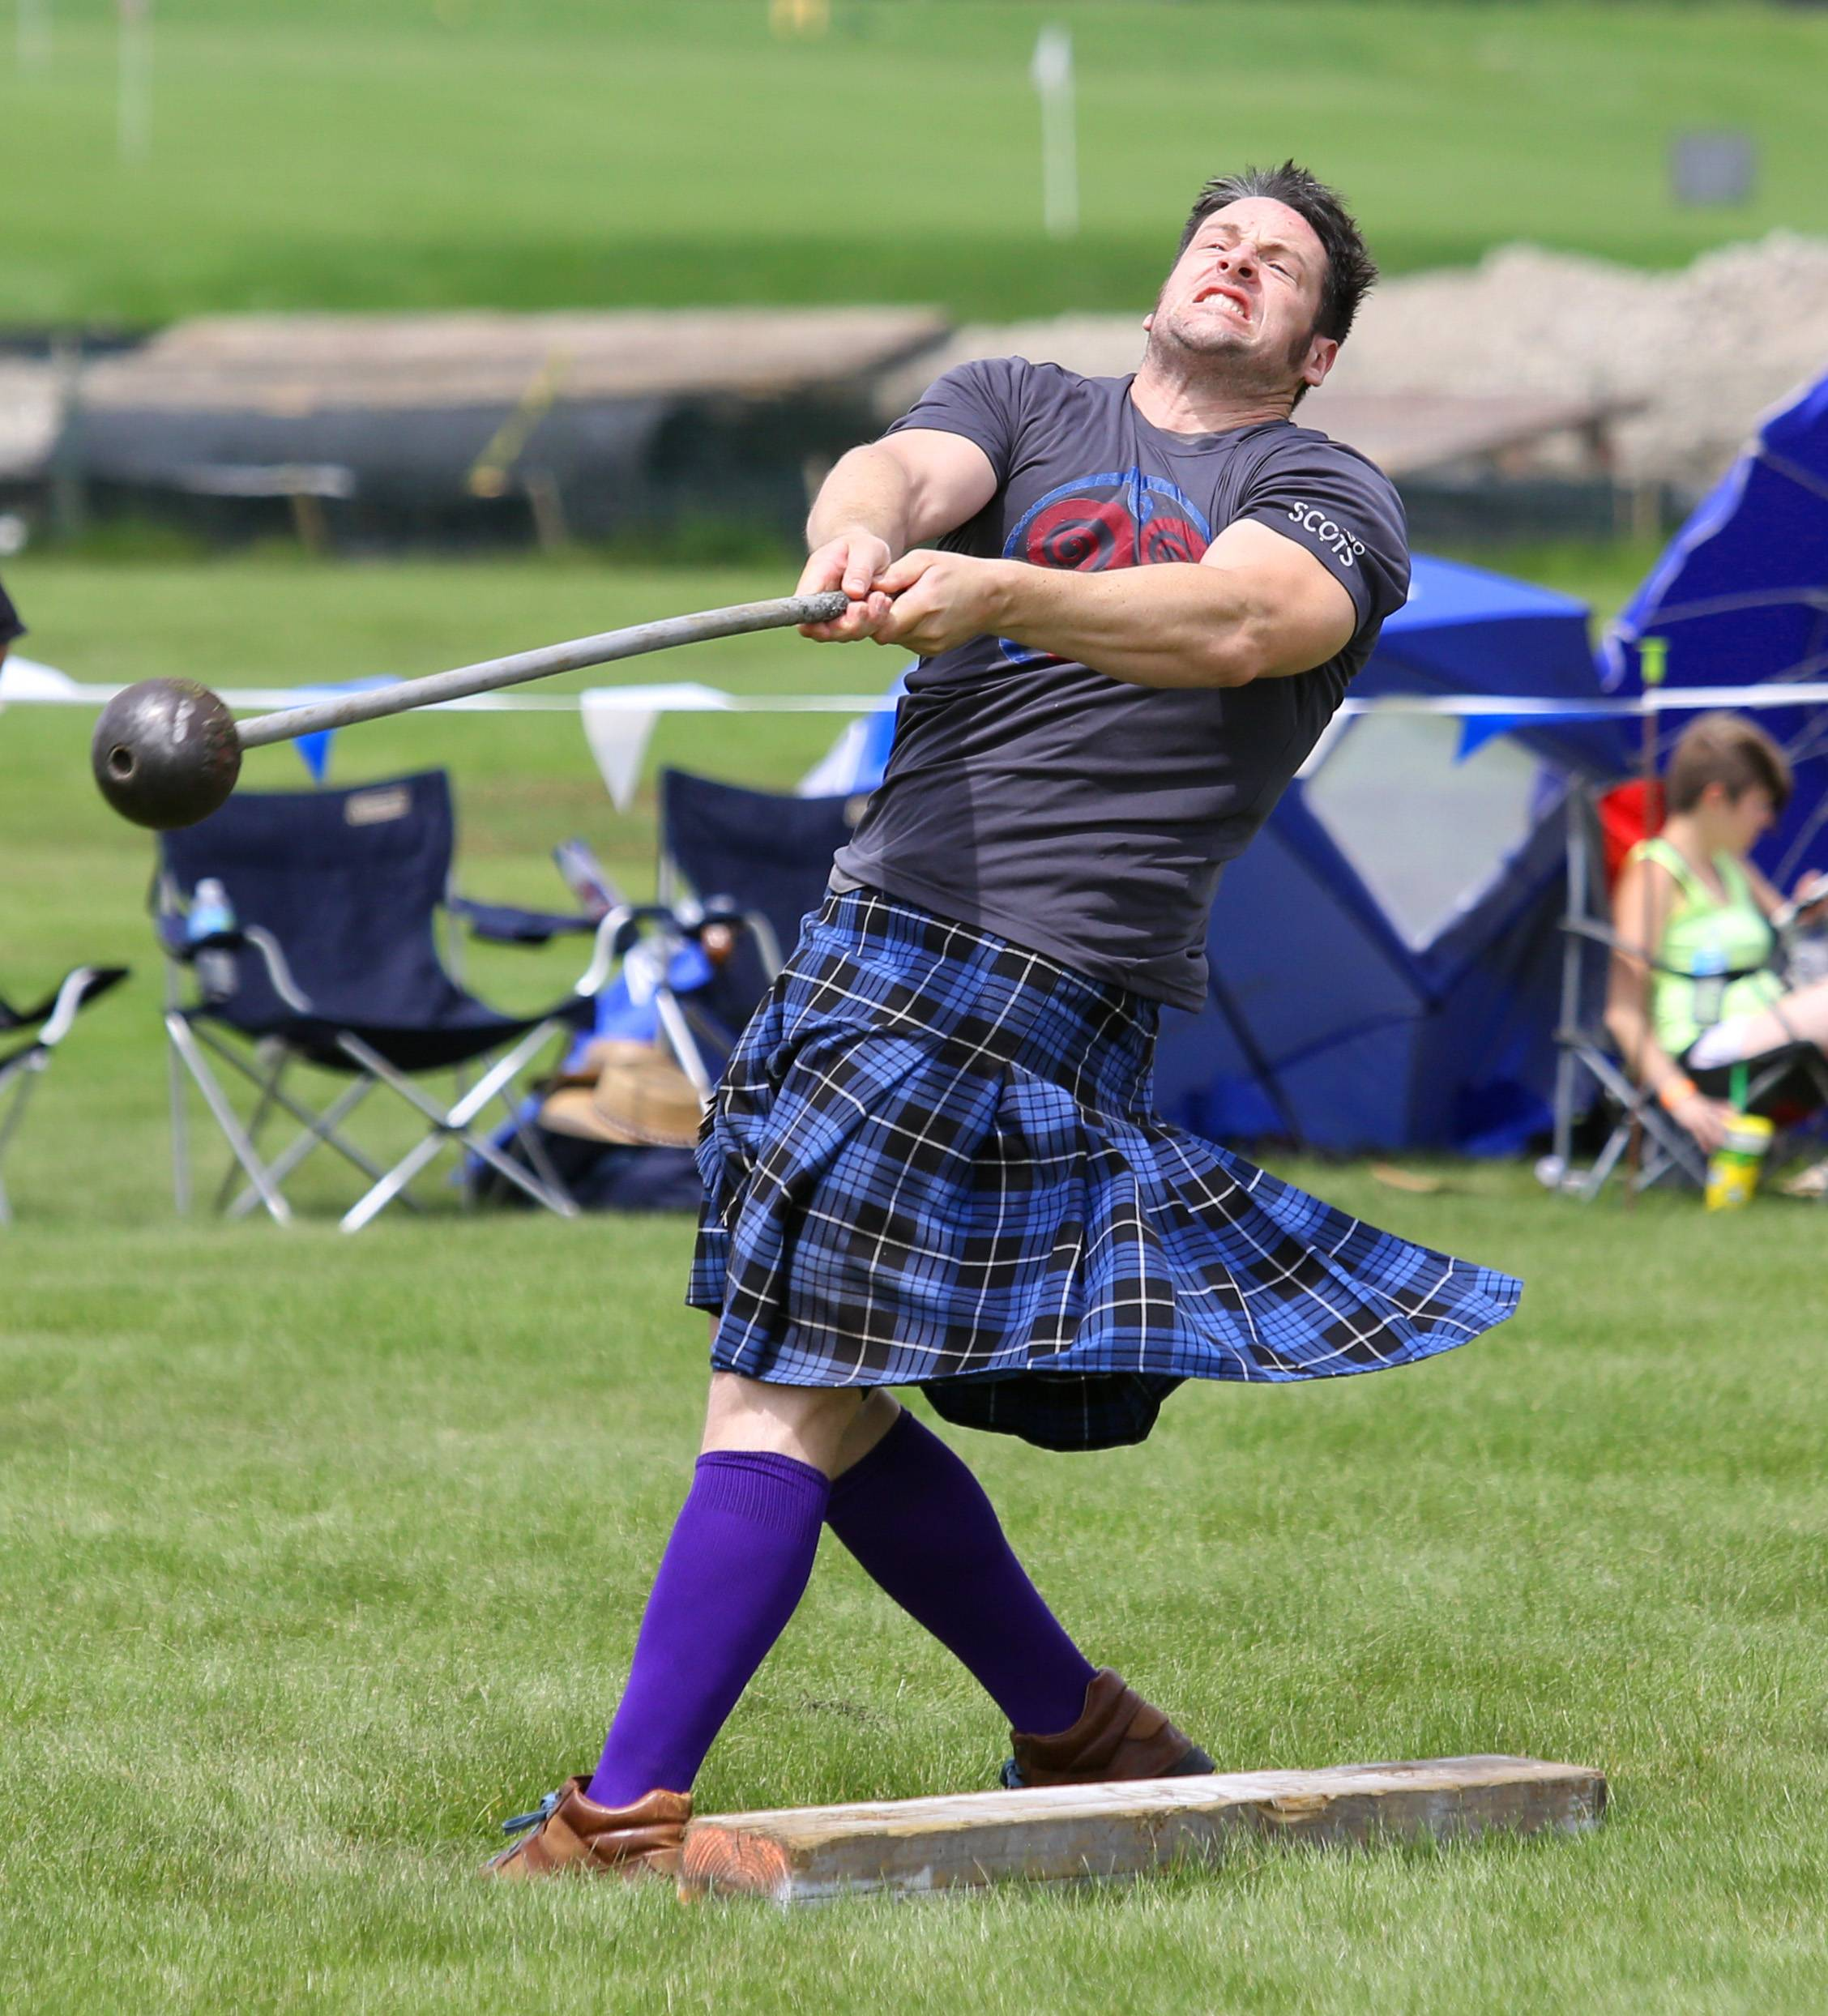 Athletes experienced with the hammer toss and other Scottish Heavyweight Athletics can take part in contests on Friday, while Saturday's competitions feature invited athletes.